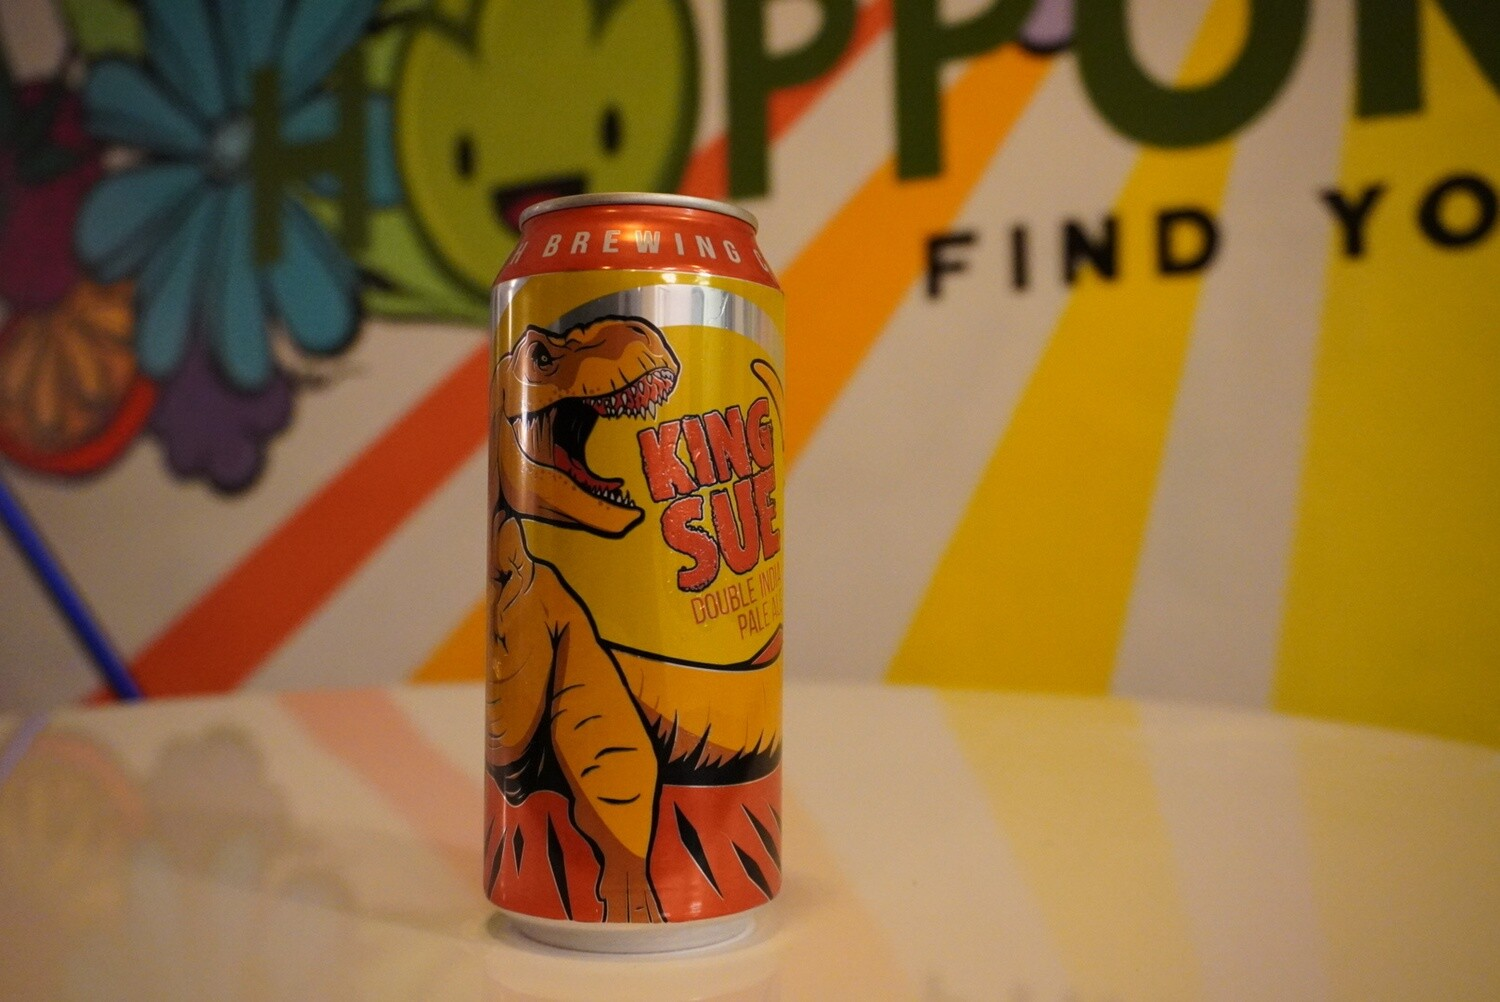 Toppling Goliath - King Sue - Double IPA - 7.8% ABV - 16oz Can